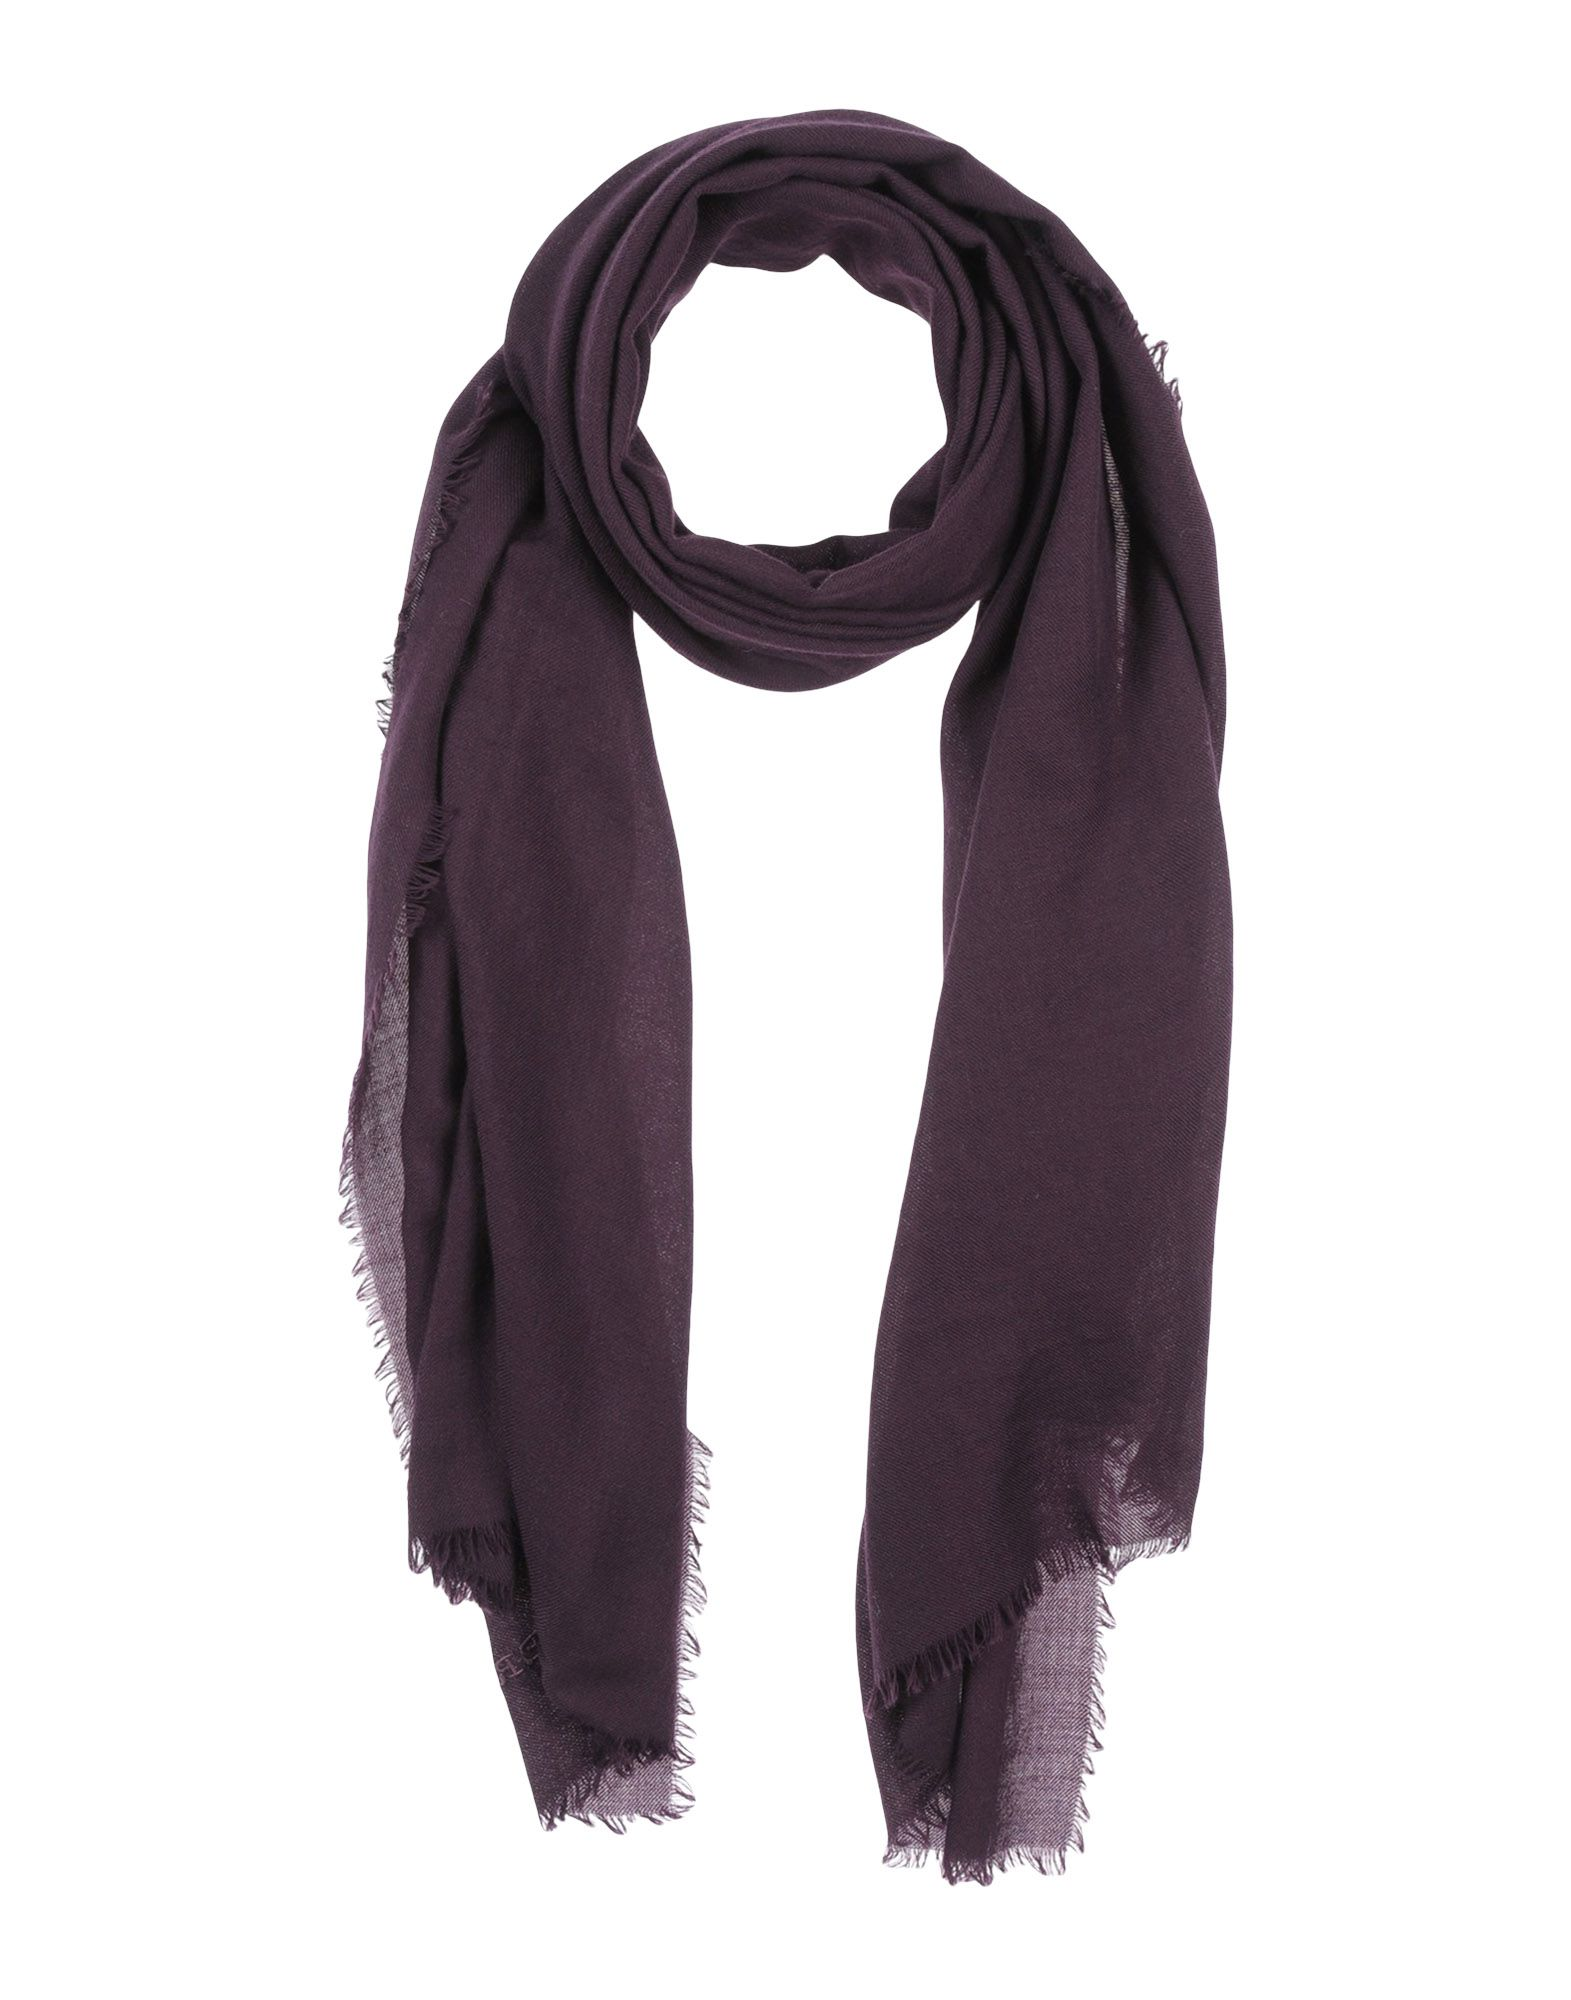 ACCESSORIES - Scarves Rossopuro MBnmY